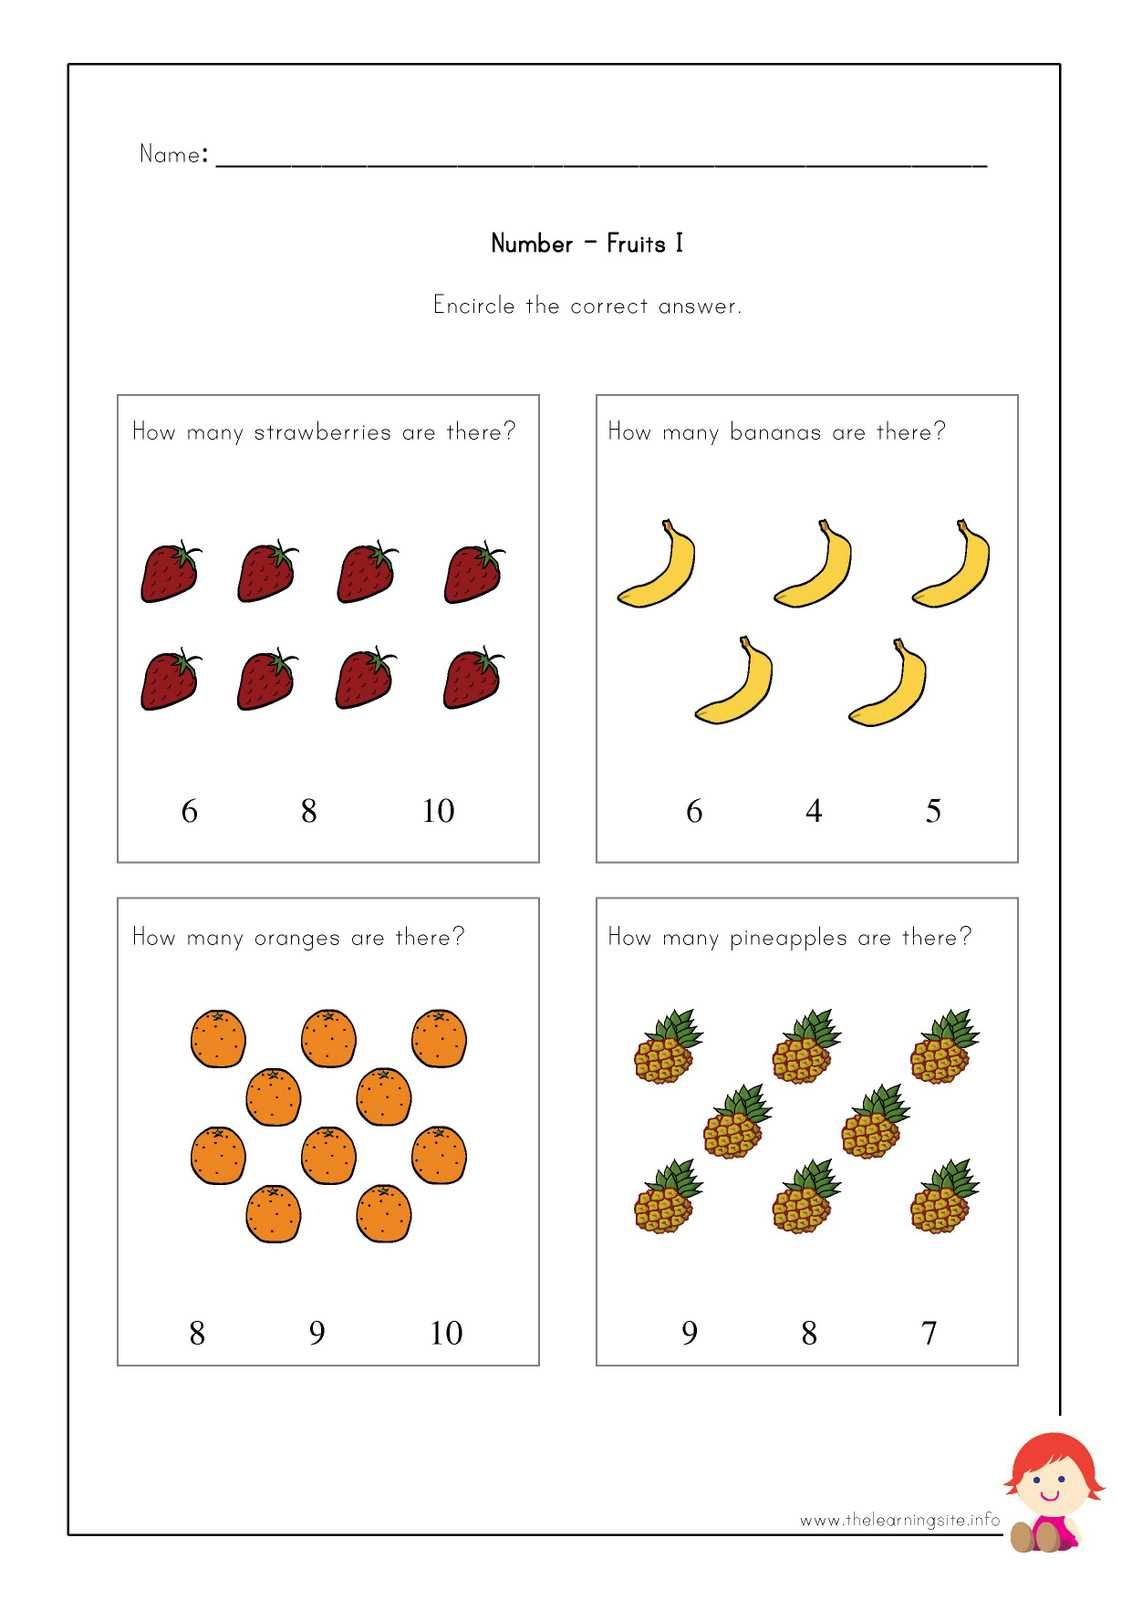 learning numbers worksheets  worksheet 1 worksheet 2 worksheet 3  worksheets, education, free worksheets, multiplication, math worksheets, and printable worksheets Elements Of Literature Worksheet 2 1600 x 1132